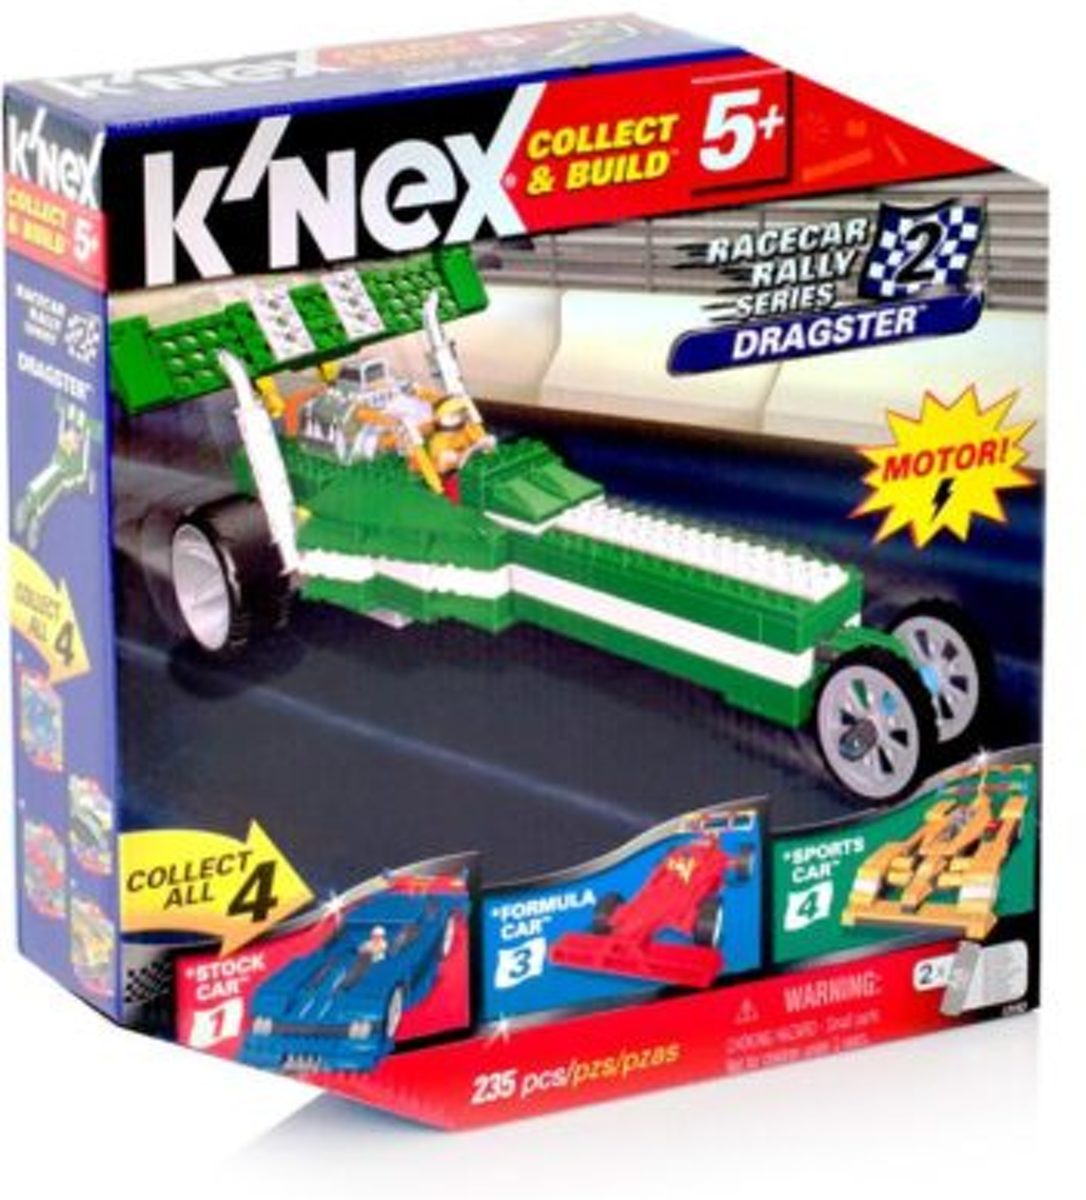 KNEX - Collect & Build - Nr.2 - Racecar rally series - Dragster - INCL. MOTOR